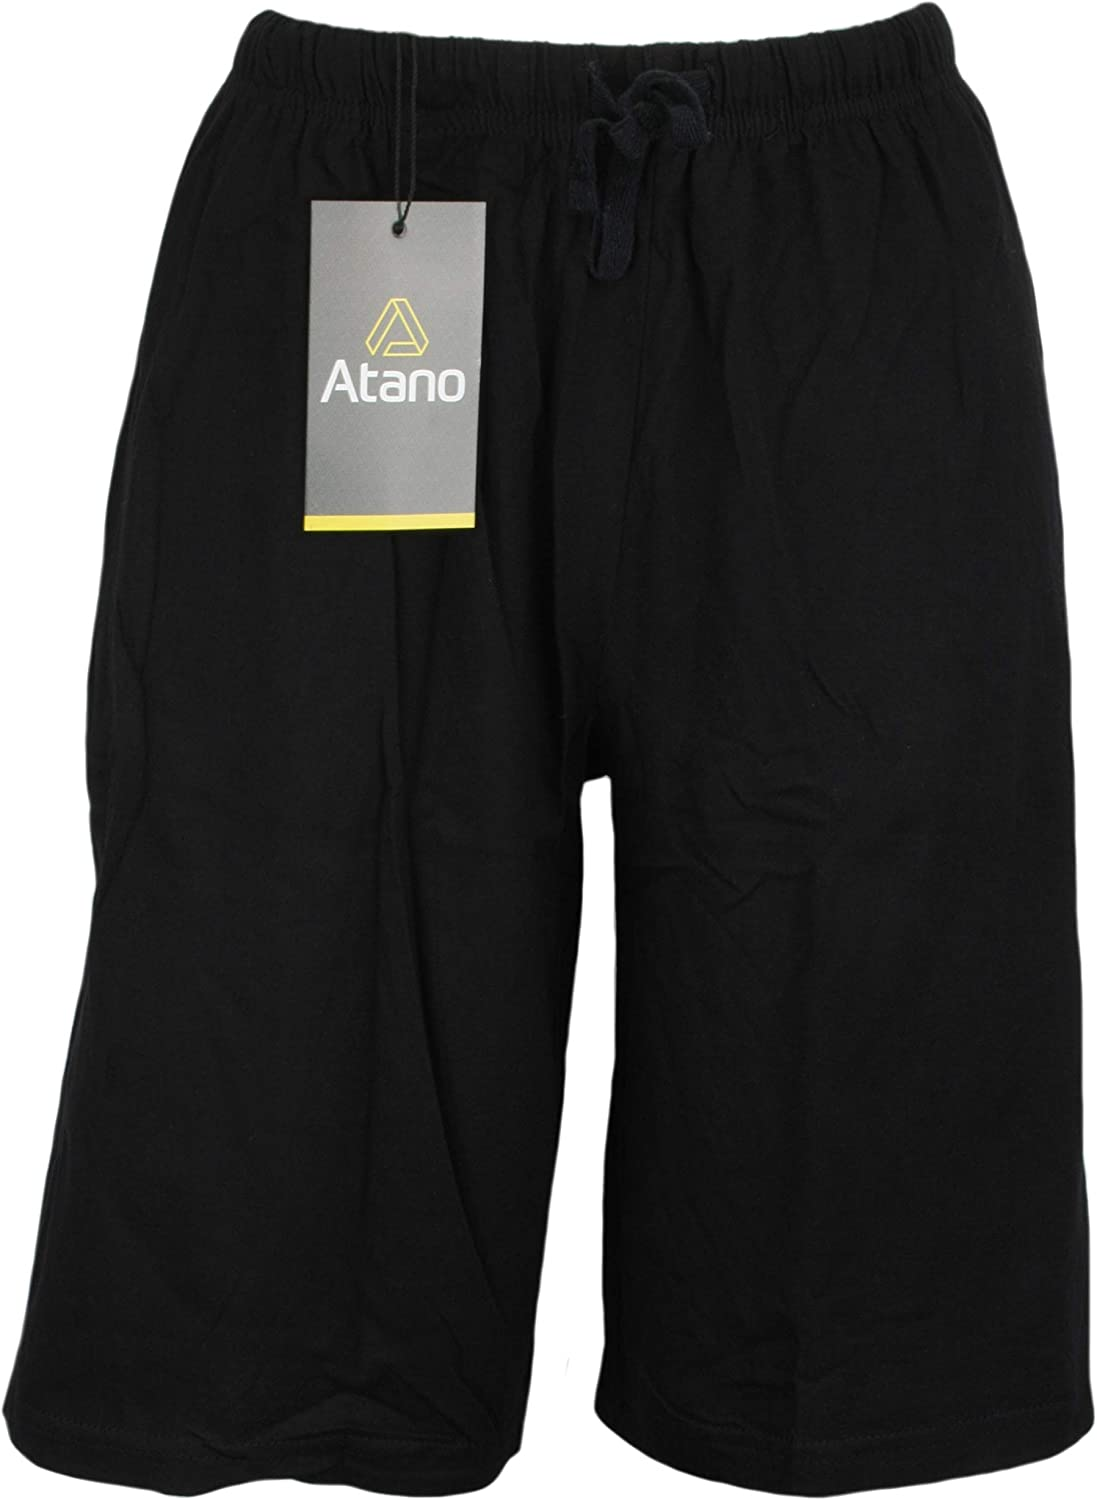 Atano Twin Pack Cotton Jersey Lounge Shorts